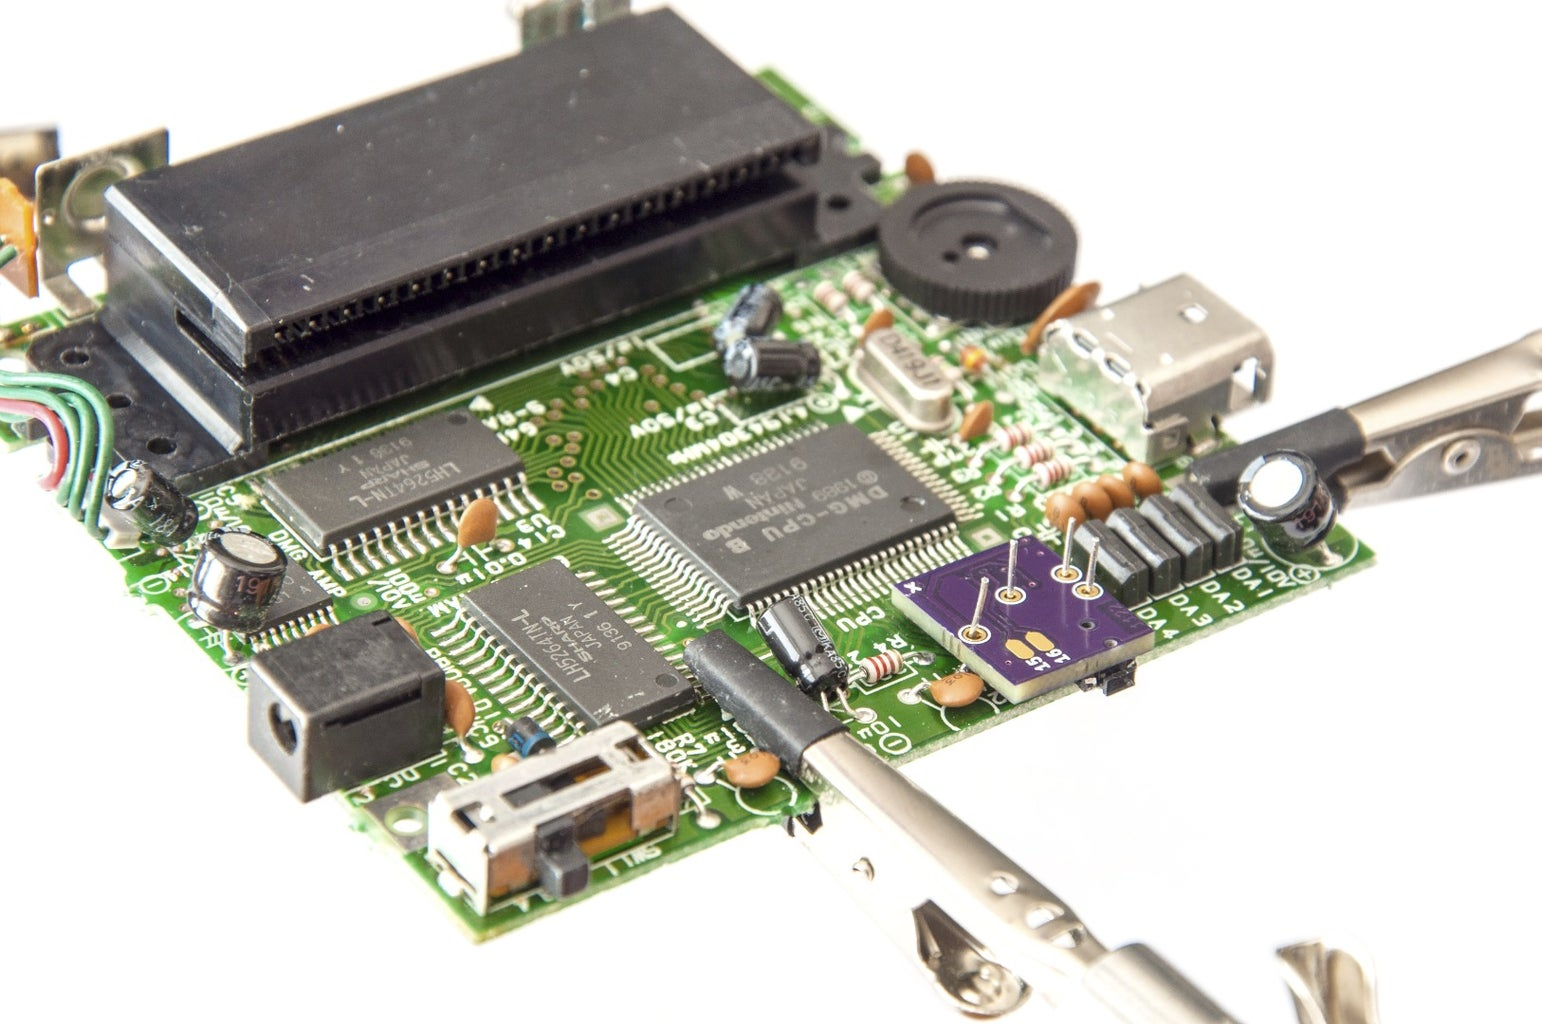 Position and Solder the Bi-vert Chip to the Extended Leads on the DMG Mainboard (CPU Side)